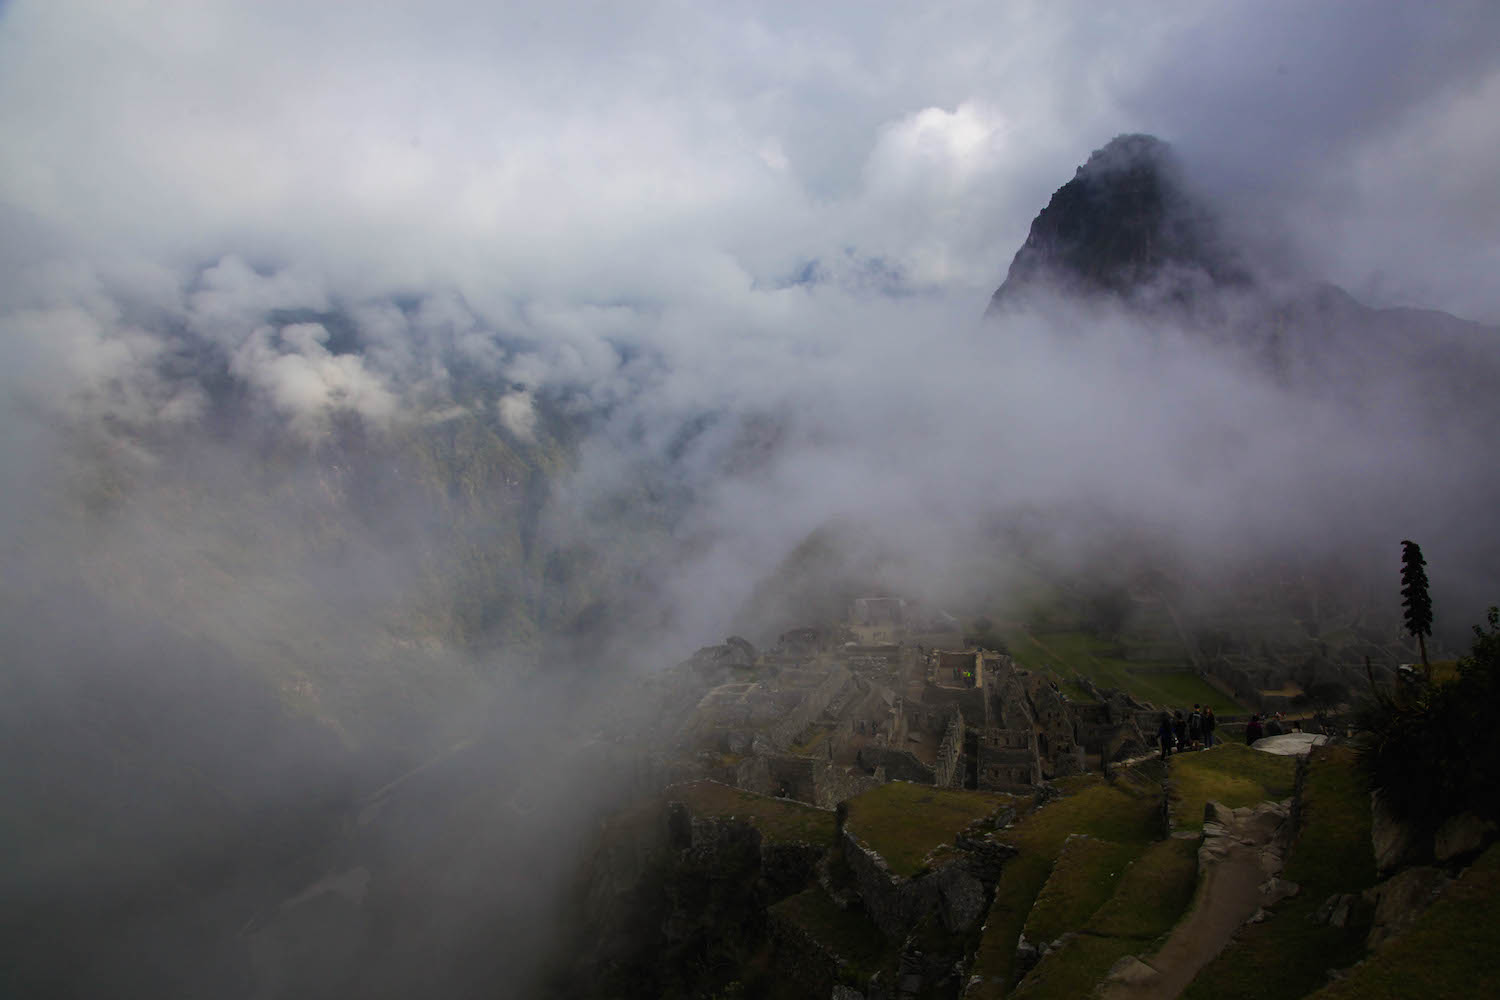 Early in the morning at Machu Picchu mist is common